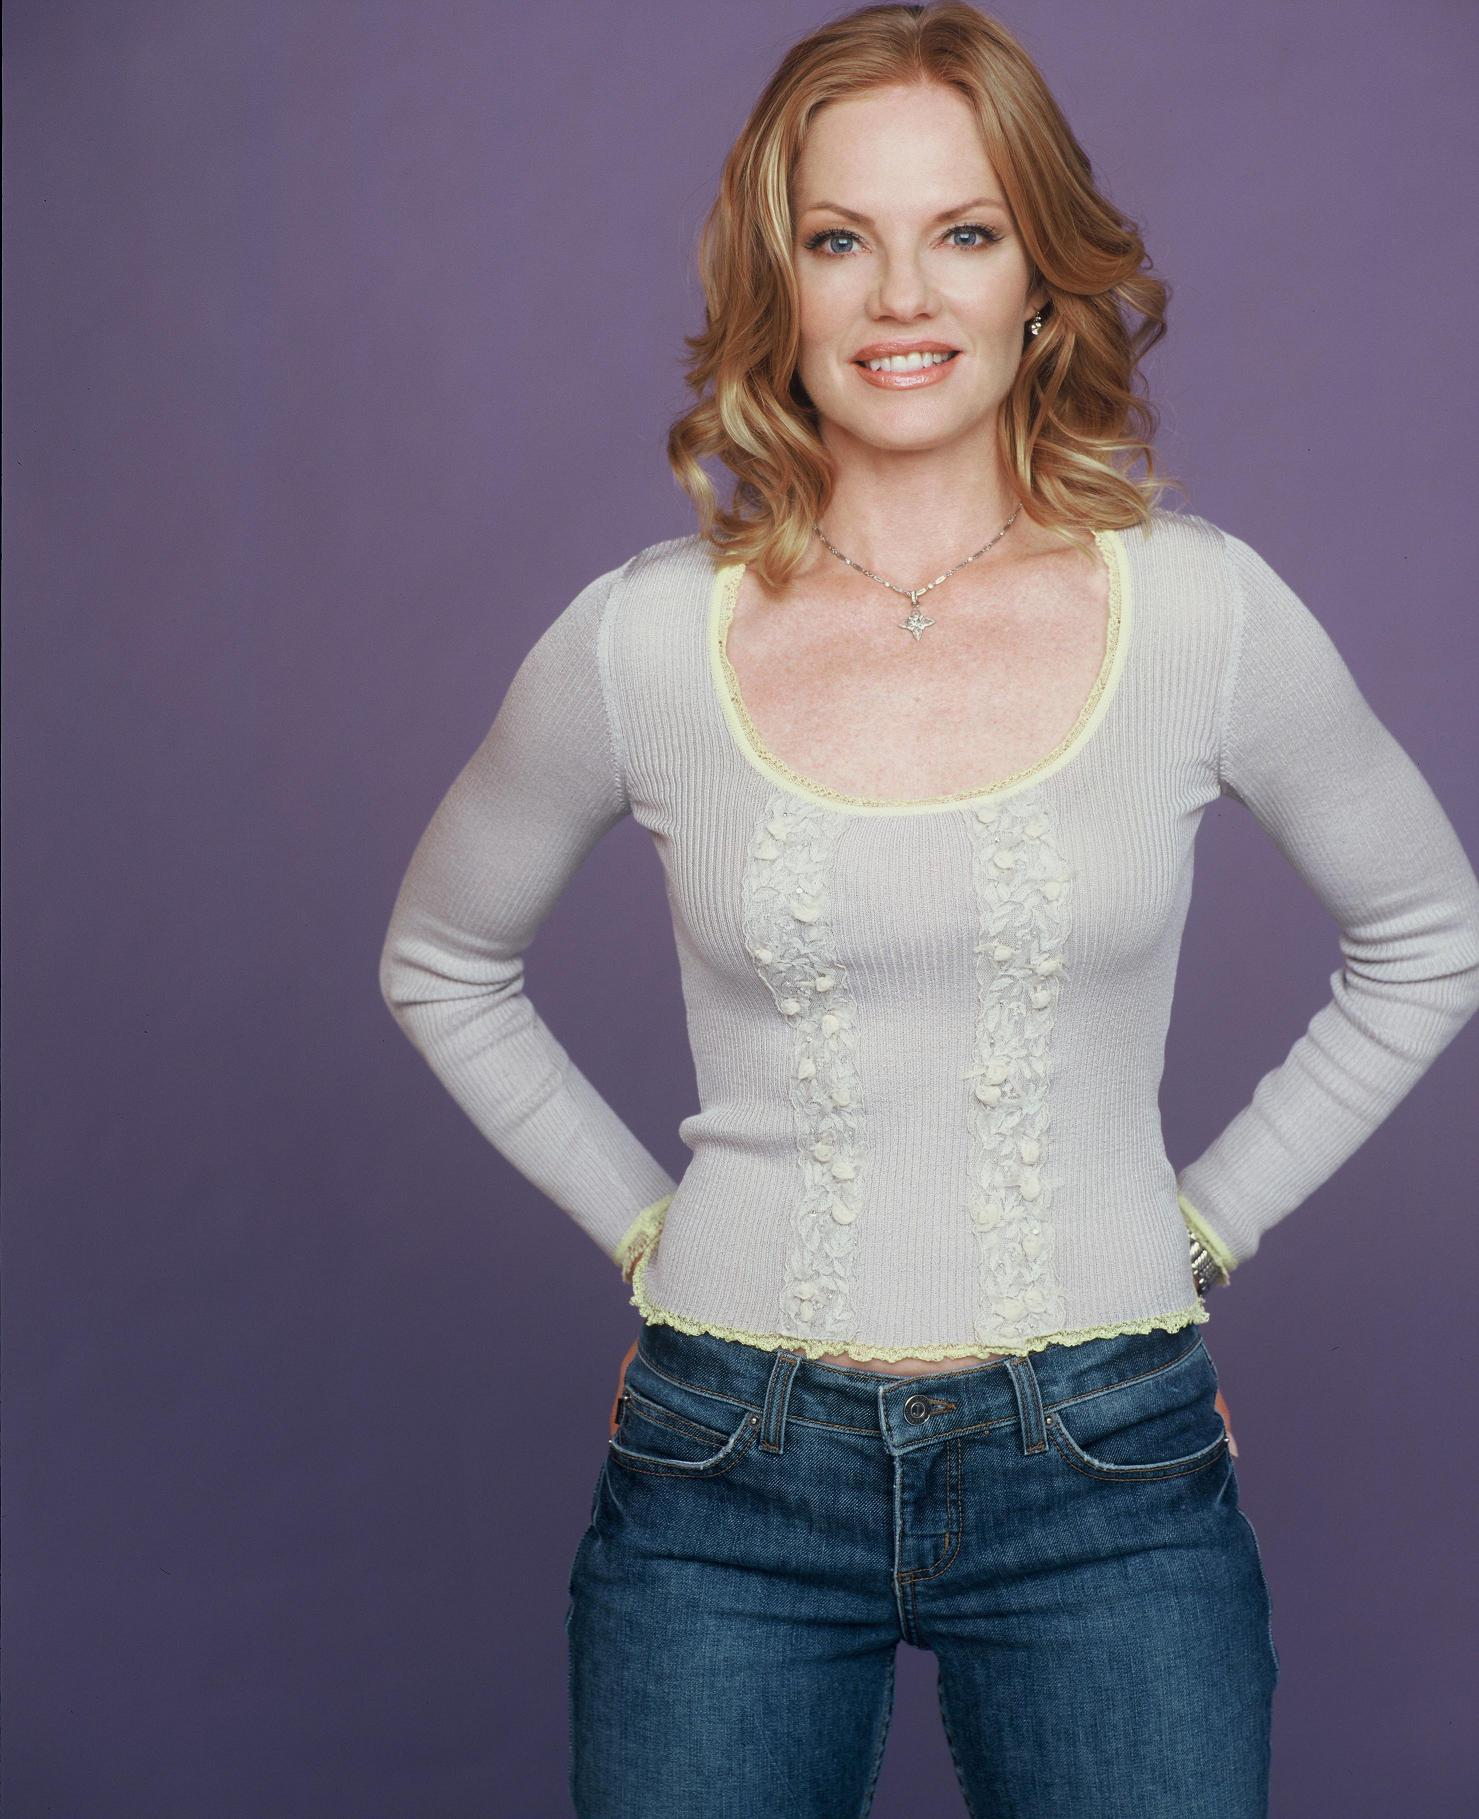 Marg Helgenberger Photo 18 Of 35 Pics, Wallpaper - Photo -2402